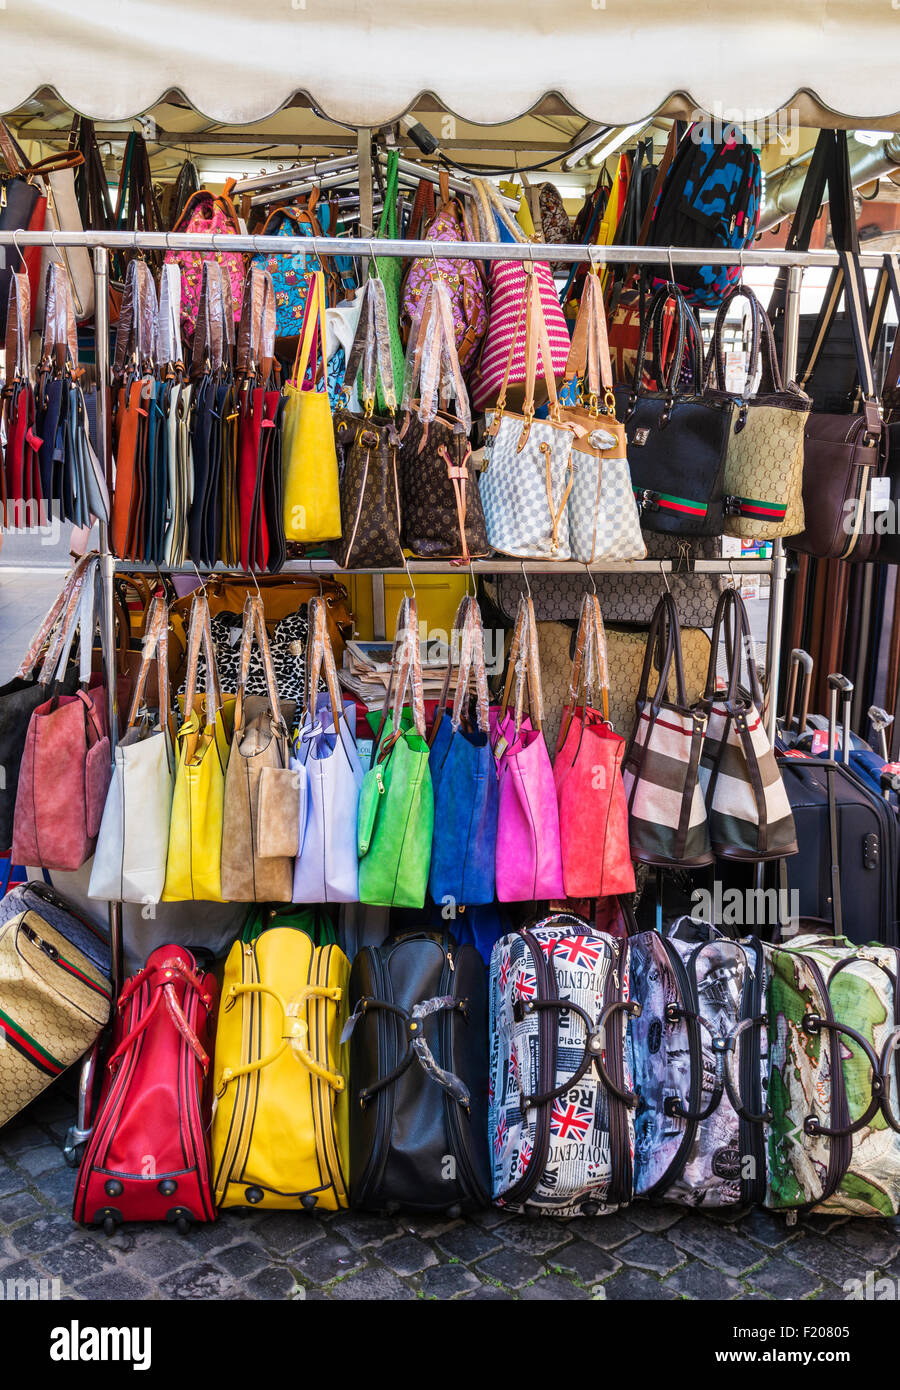 070a7fac588 Stand of replica designer bags in a Rome market, Rome, Italy - Stock Image